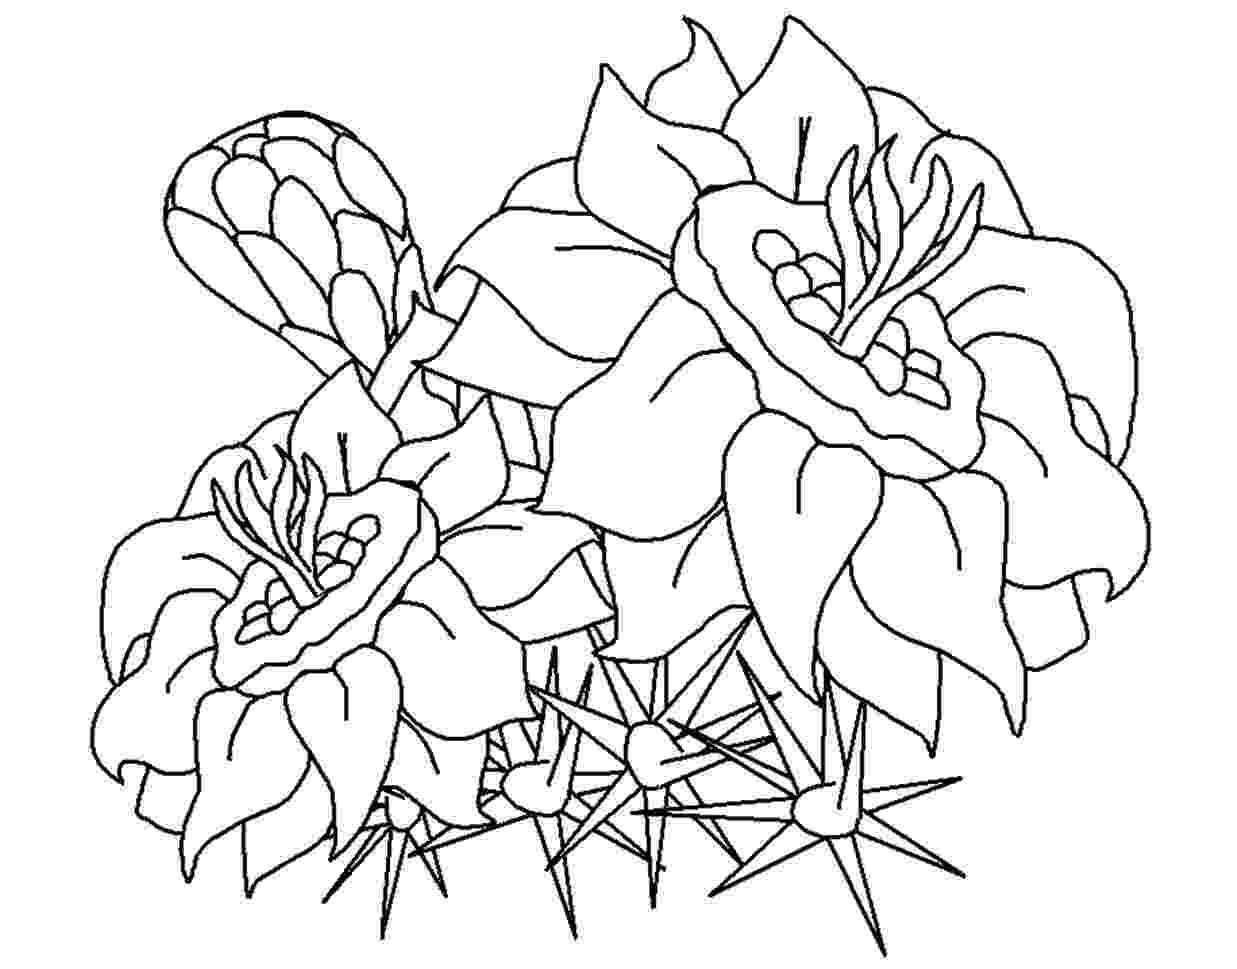 flower colouring pages to print free printable flower coloring pages for kids cool2bkids print to colouring flower pages